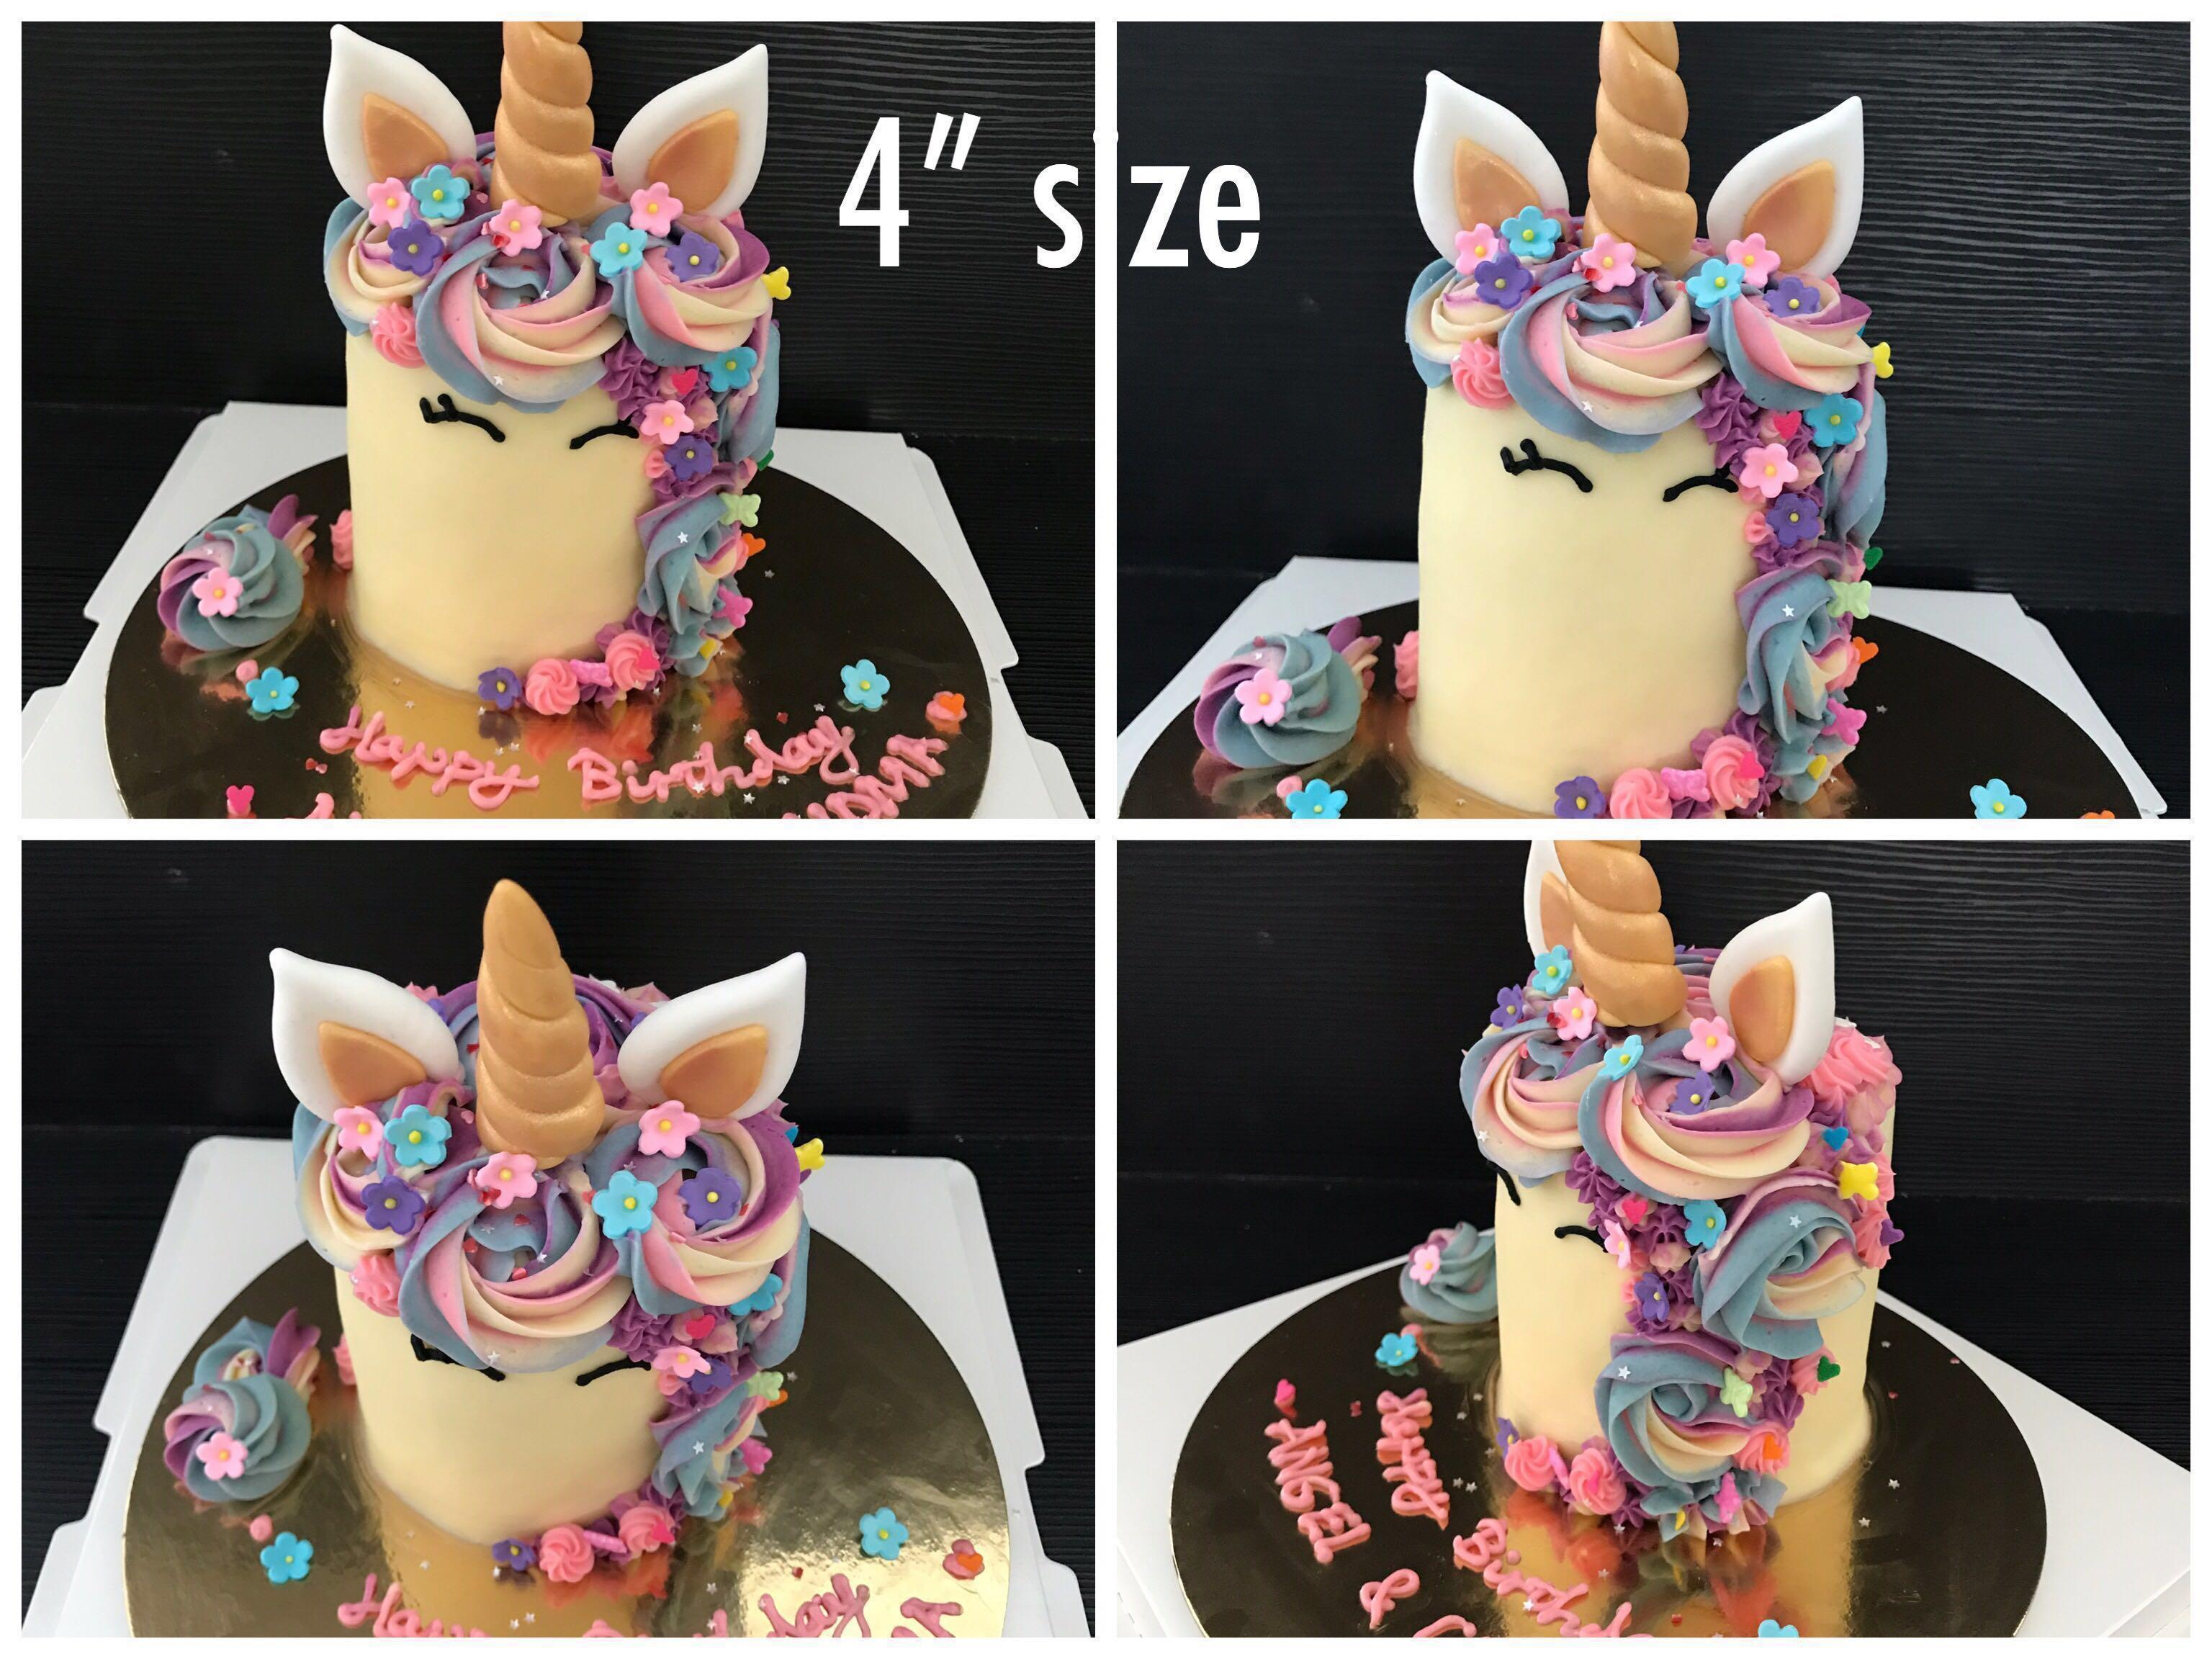 Magical Unicorn Cake / cupcakes  (various sizes with price details)